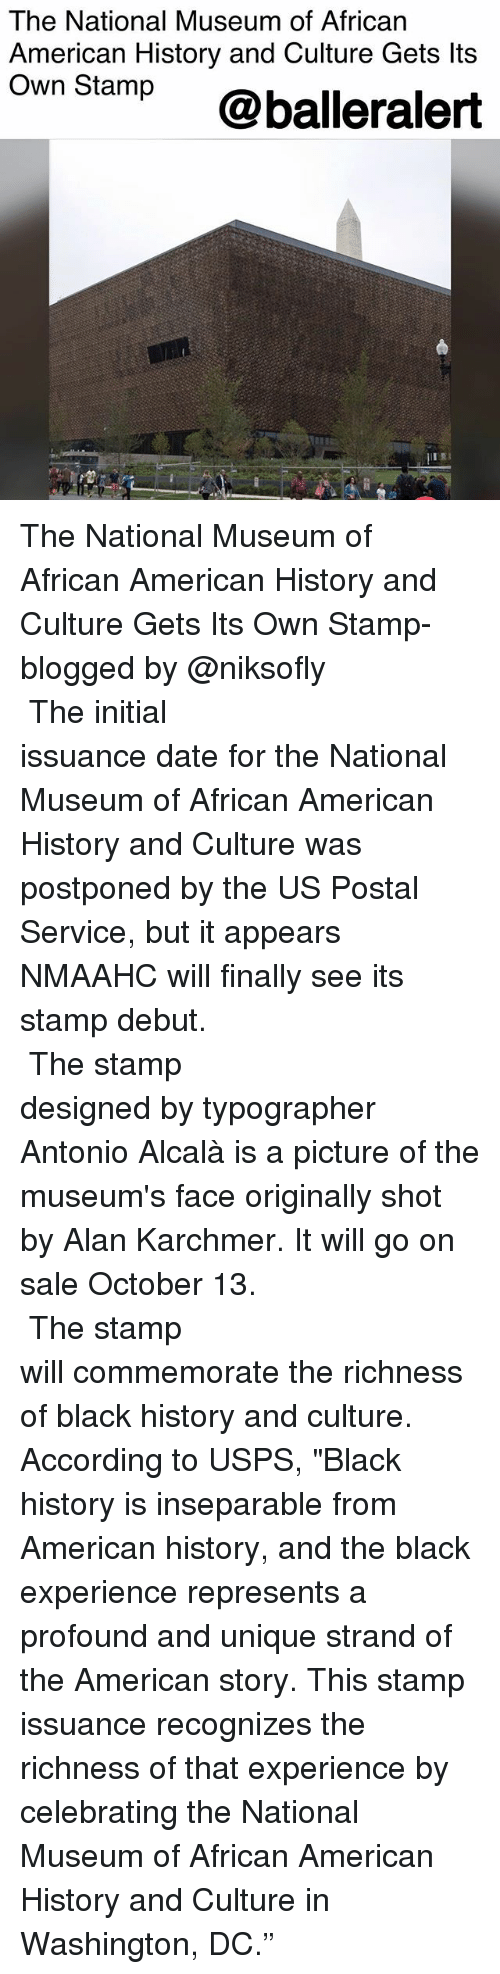 """Memes, American, and Black: The National Museum of African  American History and Culture Gets lts  Own Stamp@balleralert The National Museum of African American History and Culture Gets Its Own Stamp- blogged by @niksofly ⠀⠀⠀⠀⠀⠀⠀⠀⠀⠀⠀⠀⠀⠀⠀⠀⠀⠀⠀⠀⠀⠀⠀⠀⠀⠀⠀⠀⠀⠀⠀⠀⠀ The initial issuance date for the National Museum of African American History and Culture was postponed by the US Postal Service, but it appears NMAAHC will finally see its stamp debut. ⠀⠀⠀⠀⠀⠀⠀⠀⠀⠀⠀⠀⠀⠀⠀⠀⠀⠀⠀⠀⠀⠀⠀⠀⠀⠀⠀⠀⠀⠀⠀⠀⠀ The stamp designed by typographer Antonio Alcalà is a picture of the museum's face originally shot by Alan Karchmer. It will go on sale October 13. ⠀⠀⠀⠀⠀⠀⠀⠀⠀⠀⠀⠀⠀⠀⠀⠀⠀⠀⠀⠀⠀⠀⠀⠀⠀⠀⠀⠀⠀⠀⠀⠀⠀ The stamp will commemorate the richness of black history and culture. According to USPS, """"Black history is inseparable from American history, and the black experience represents a profound and unique strand of the American story. This stamp issuance recognizes the richness of that experience by celebrating the National Museum of African American History and Culture in Washington, DC."""""""